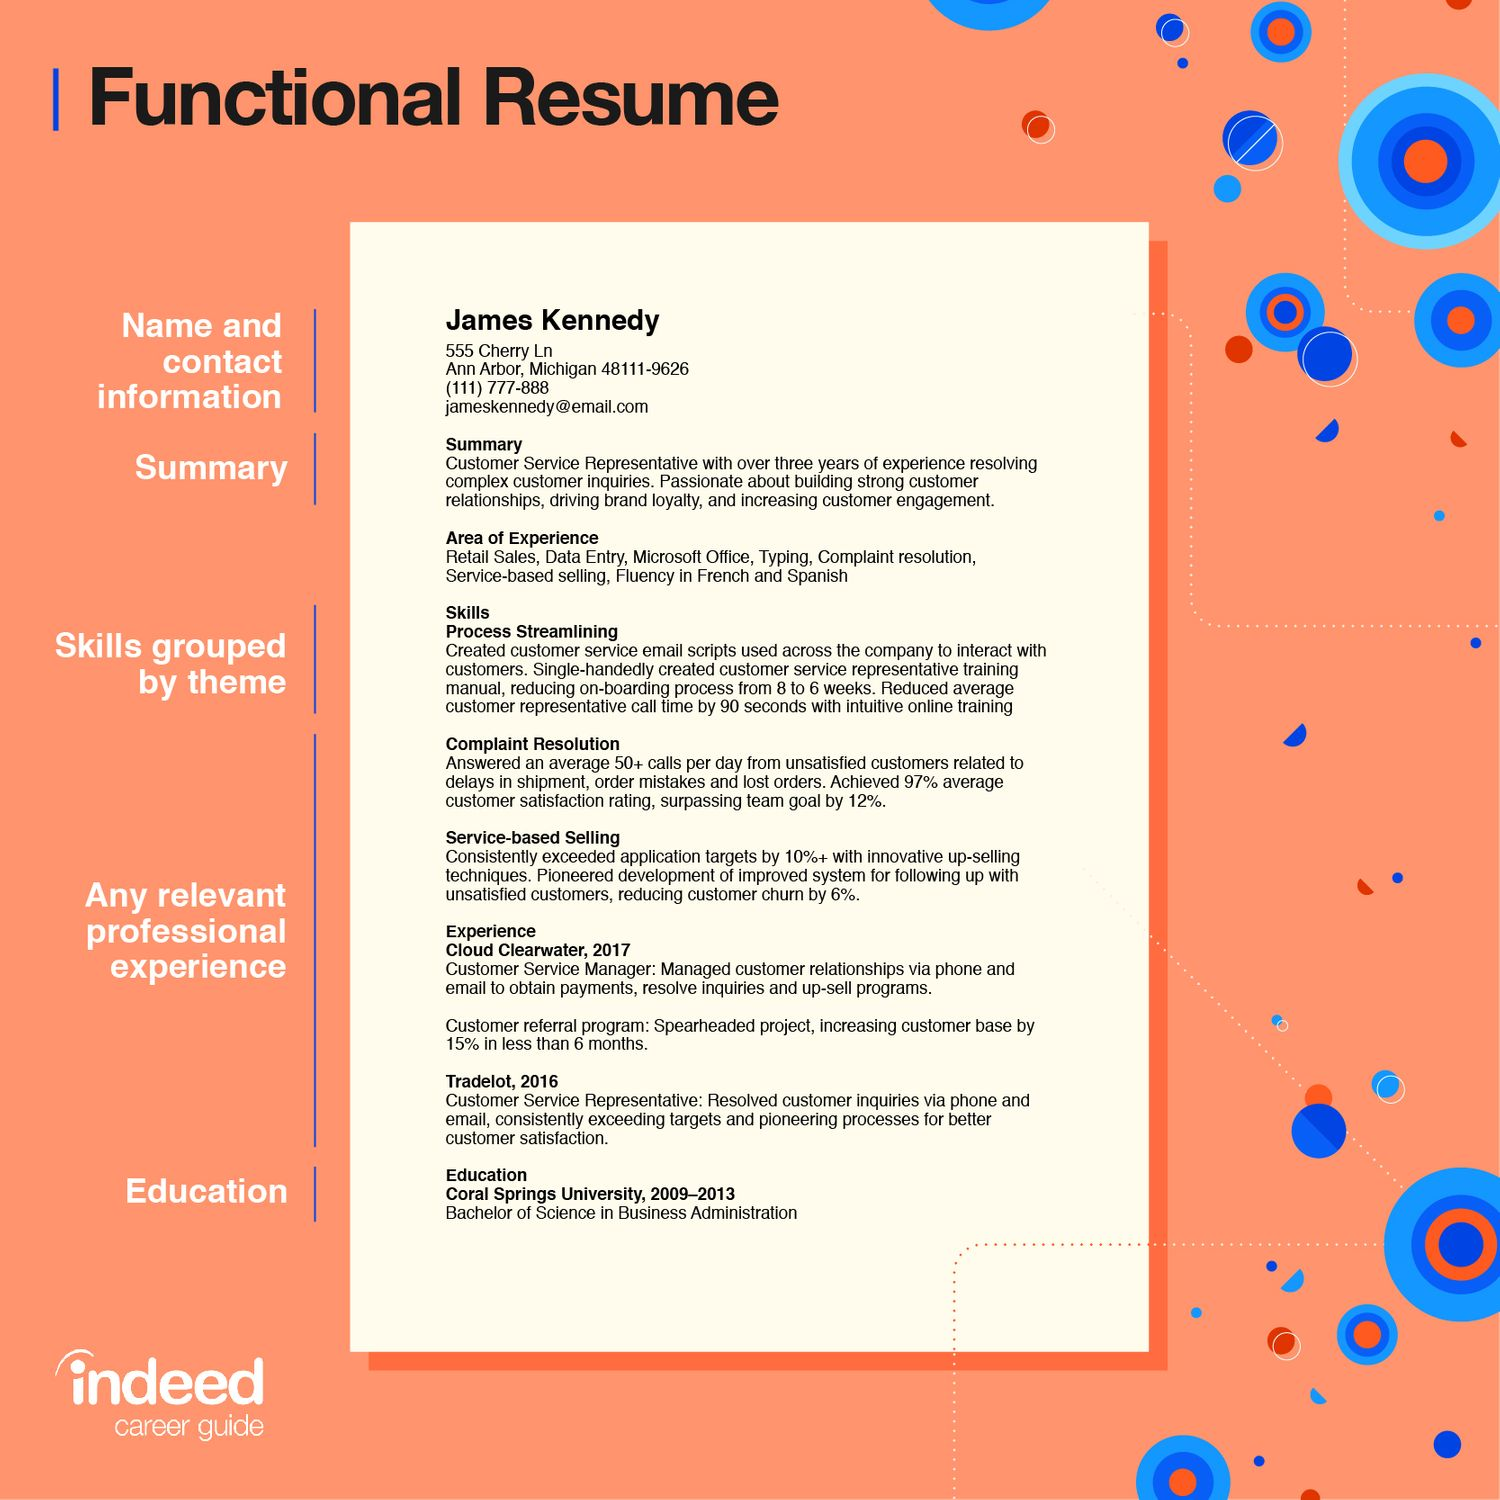 functional resume definition tips and examples indeed microsoft resized fidelity program Resume Functional Resume Microsoft